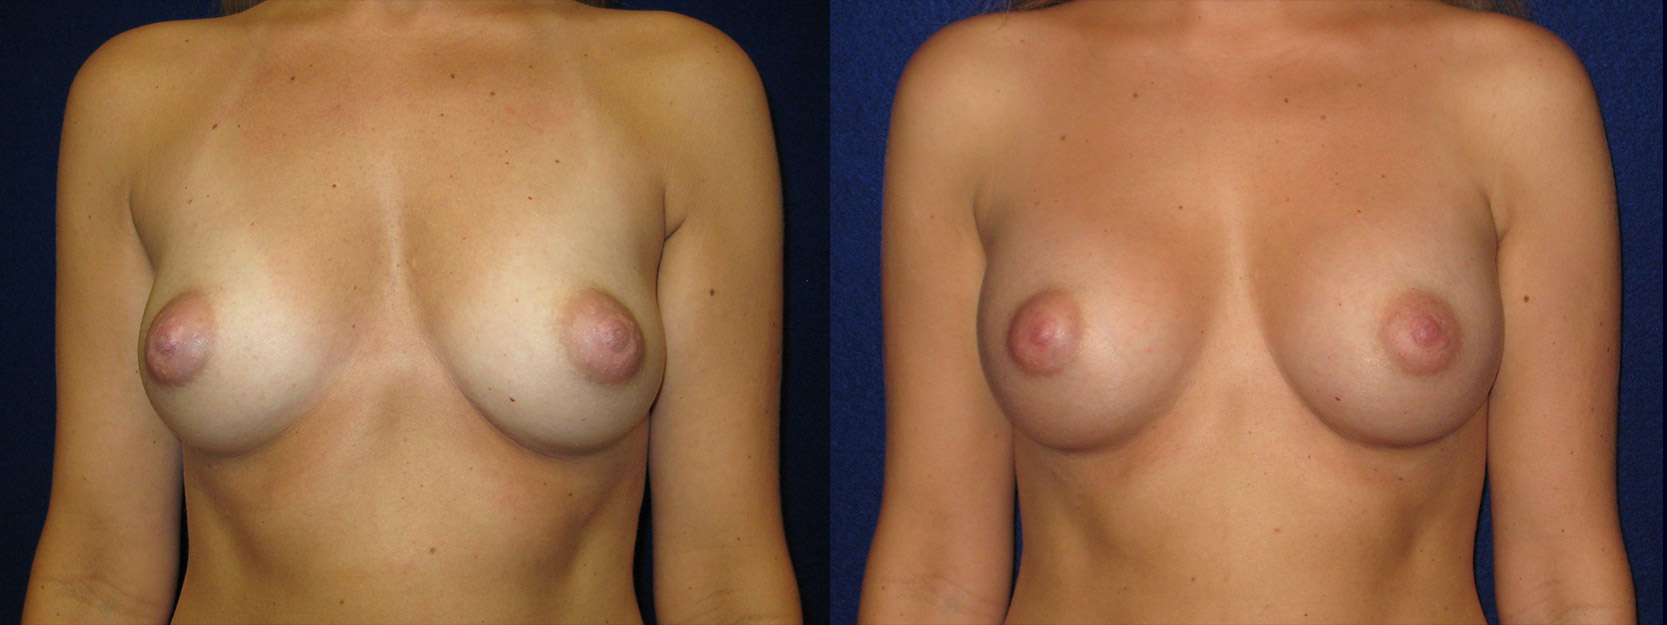 Frontal View - Breast Augmentation - Saline Implants